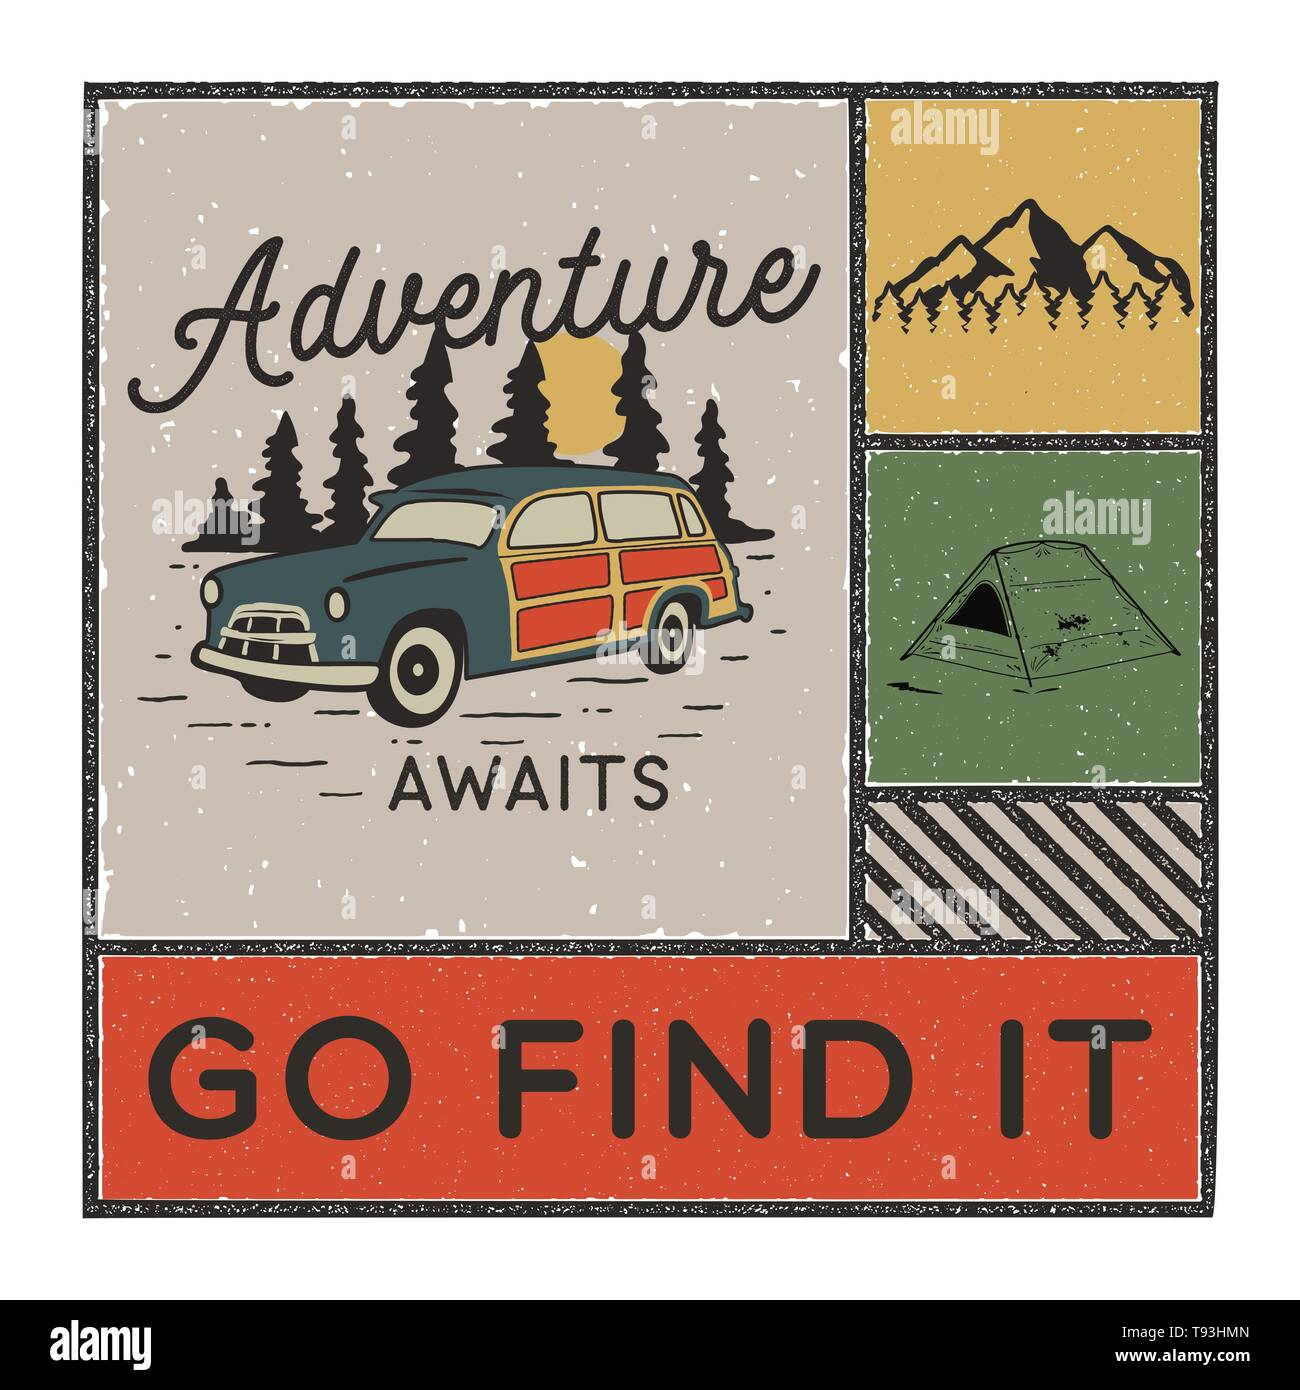 Vintage hand drawn adventure poster with mountains, tent, camp car and quote - Adventure awaits go find it. Old style outdoors adventure patch. Retro  - Stock Image